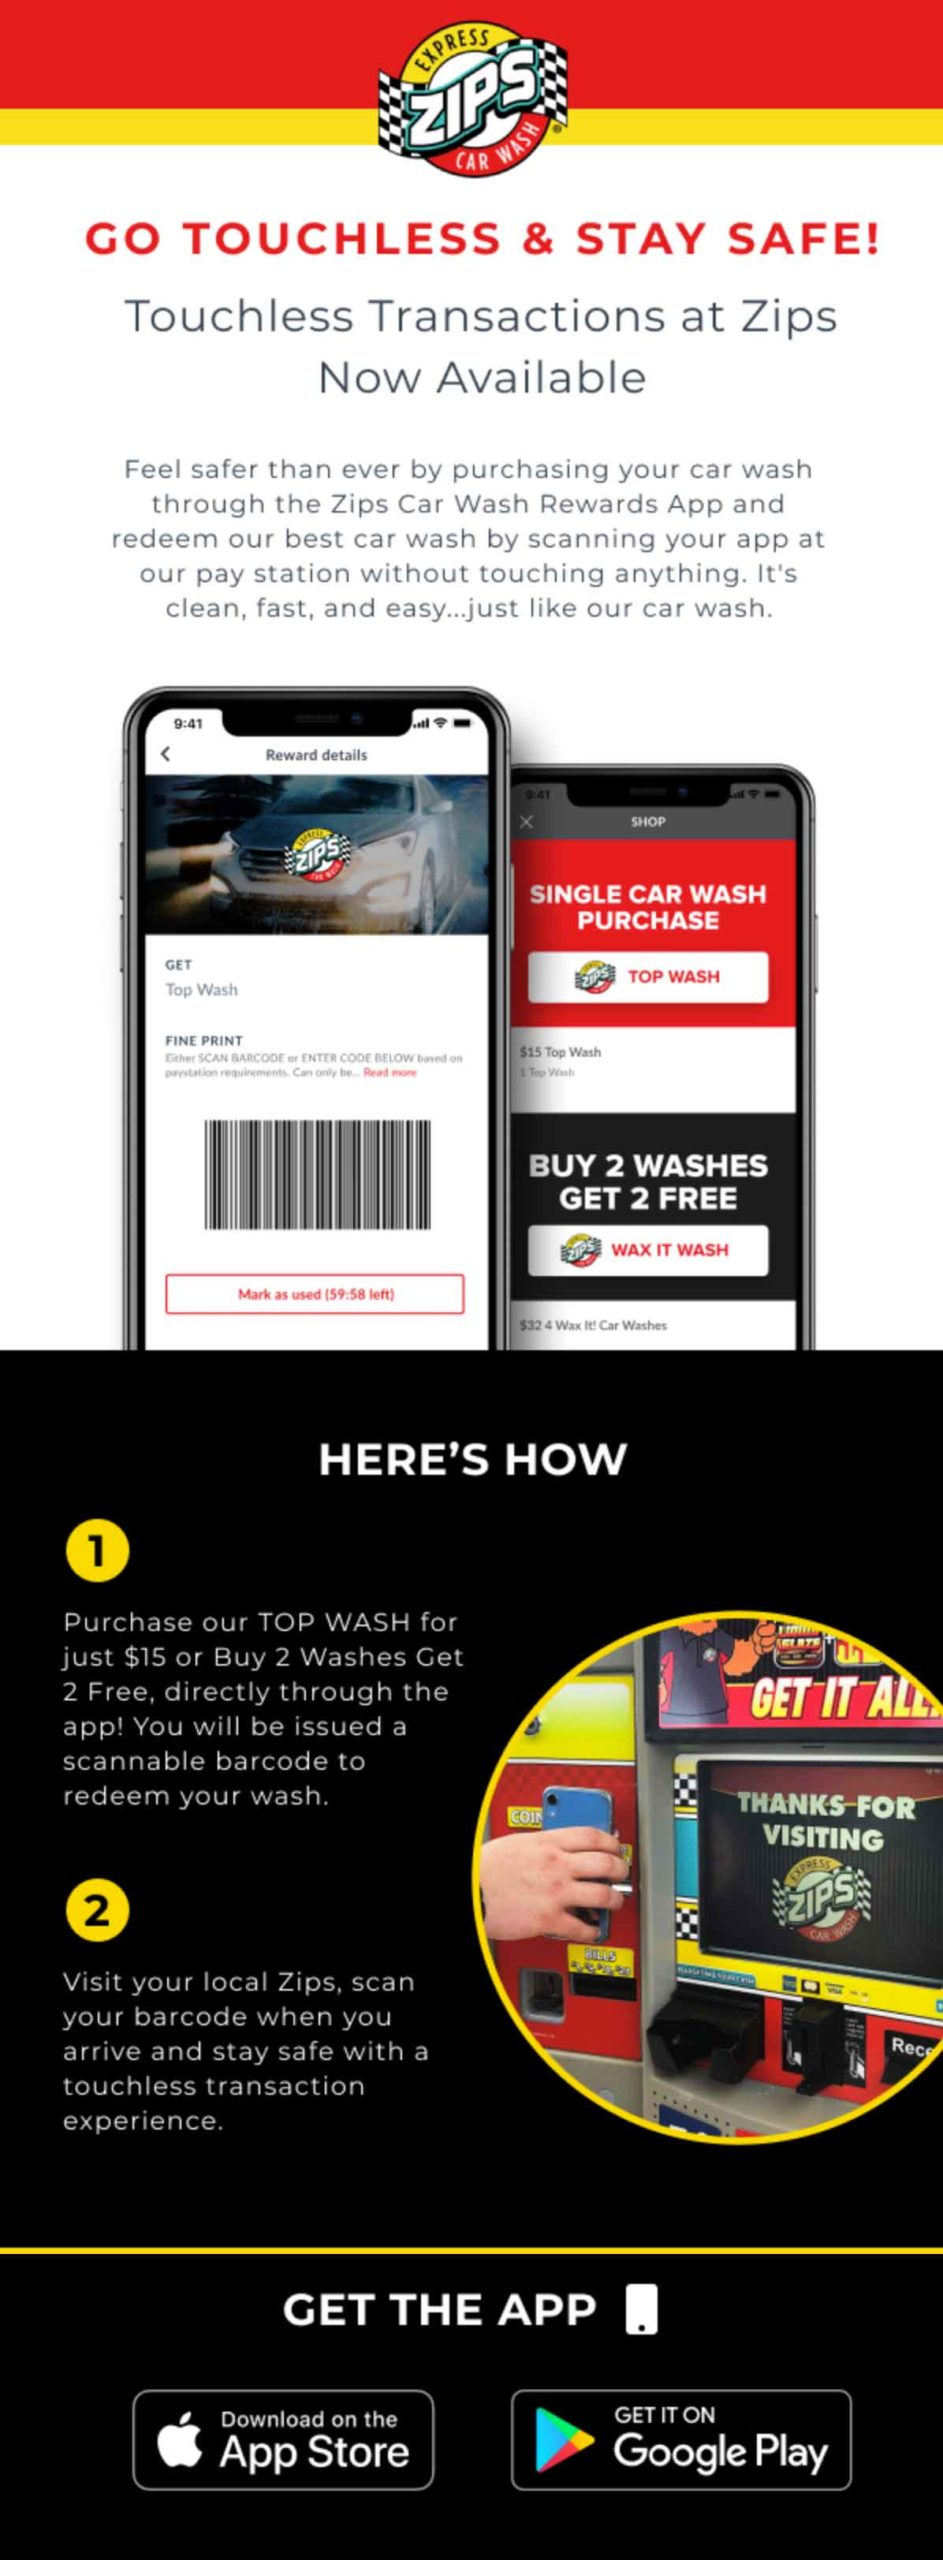 Zips Car Wash: Go Touchless & Stay Safe Email